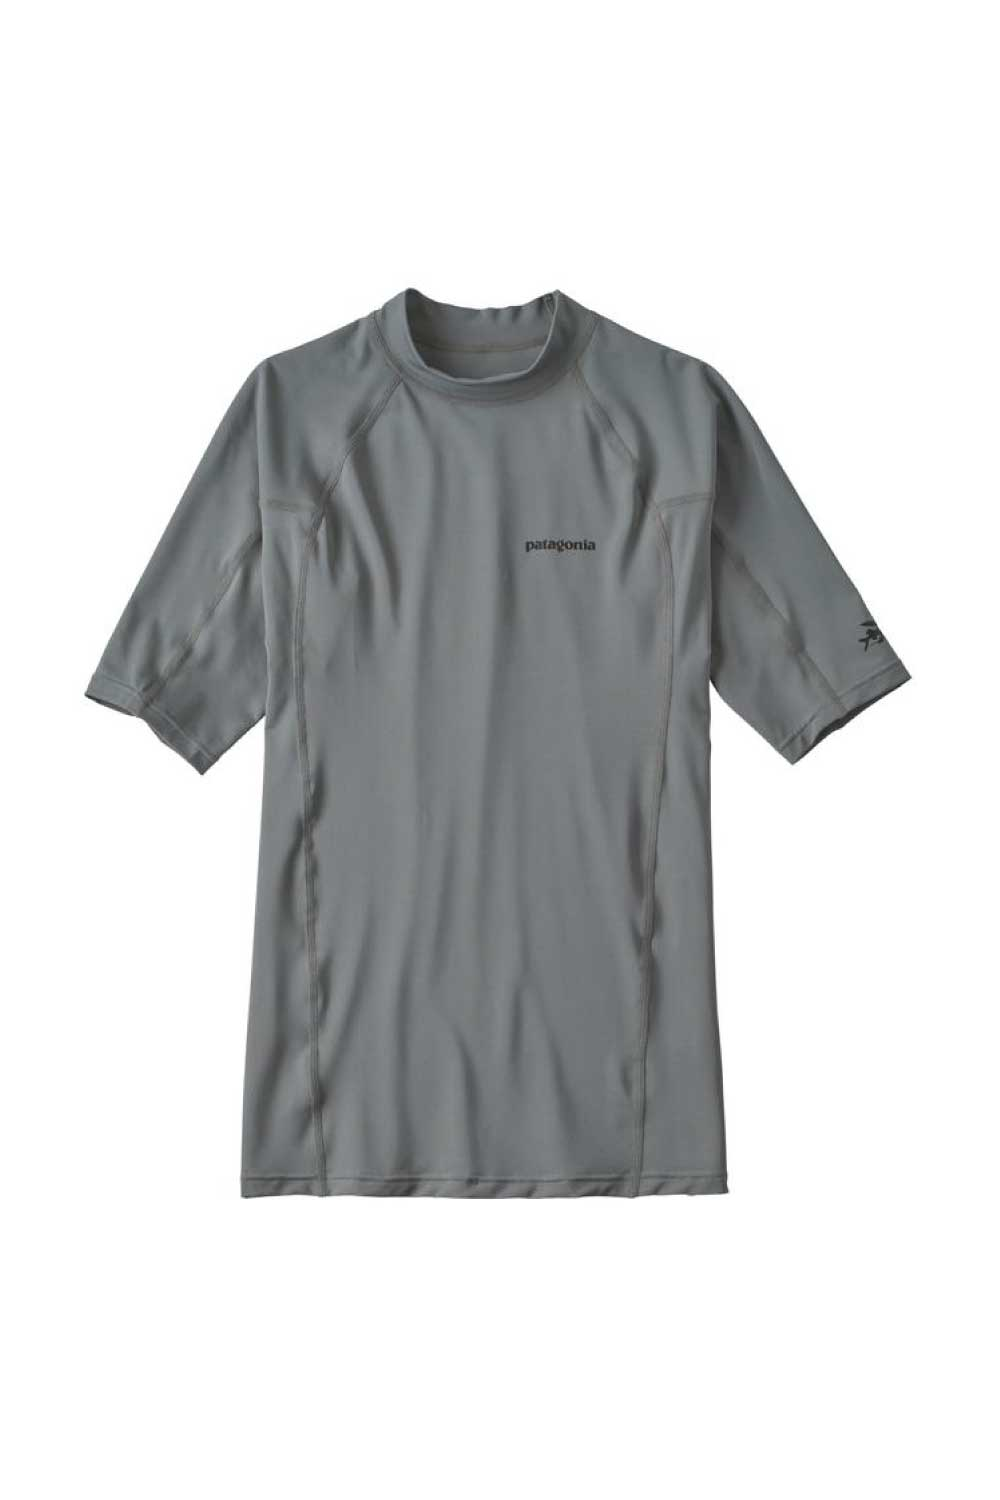 Patagonia Men's Short Sleeve R0 Rashshirt Top